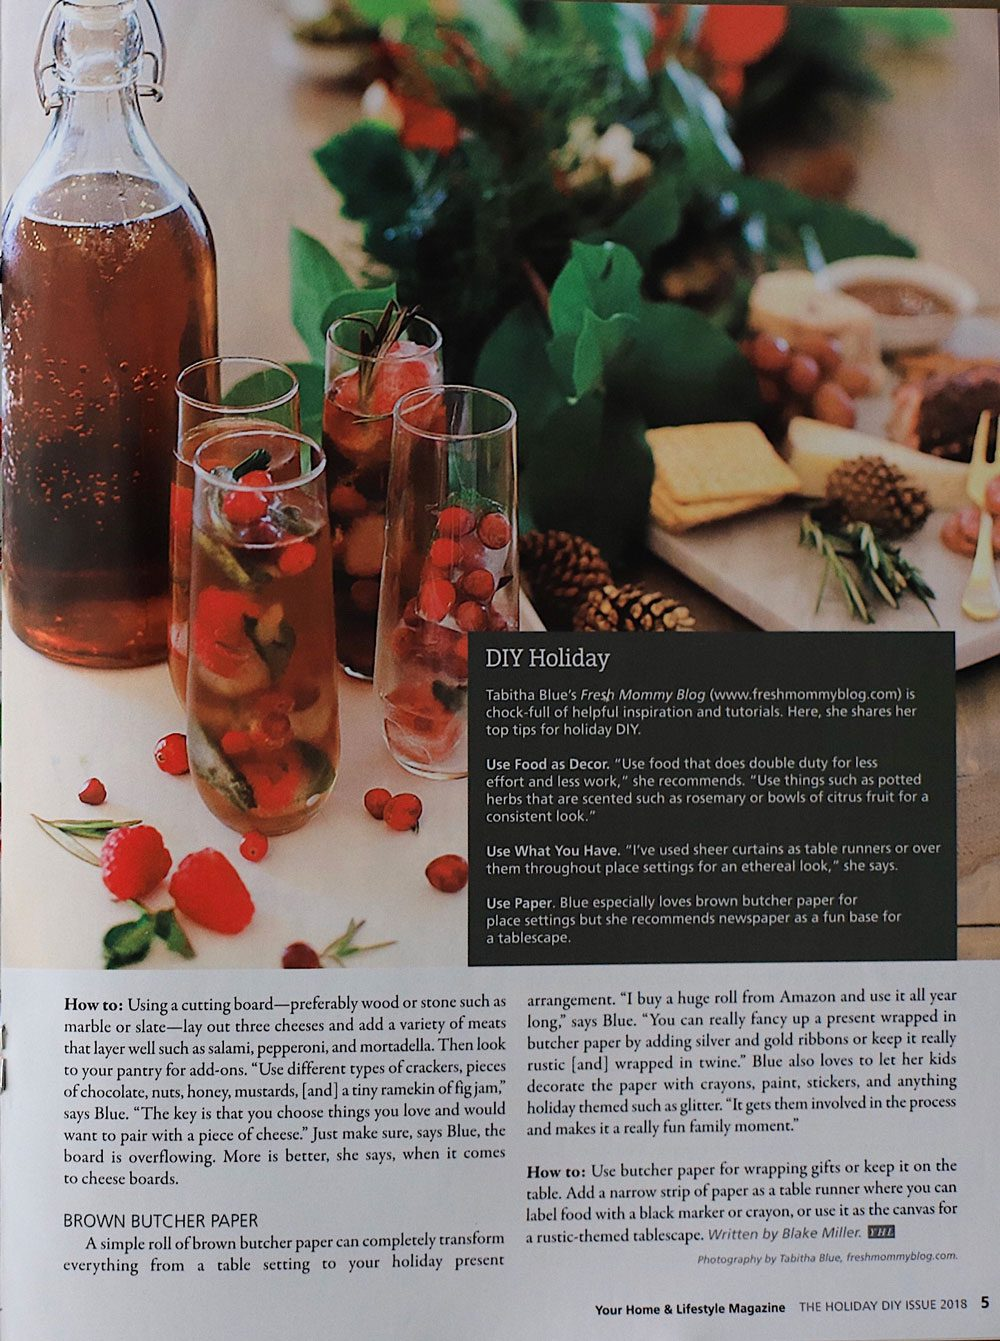 Holiday Ice Cubes feature from Tabitha Blue in Your Home & Lifestyle Magazine